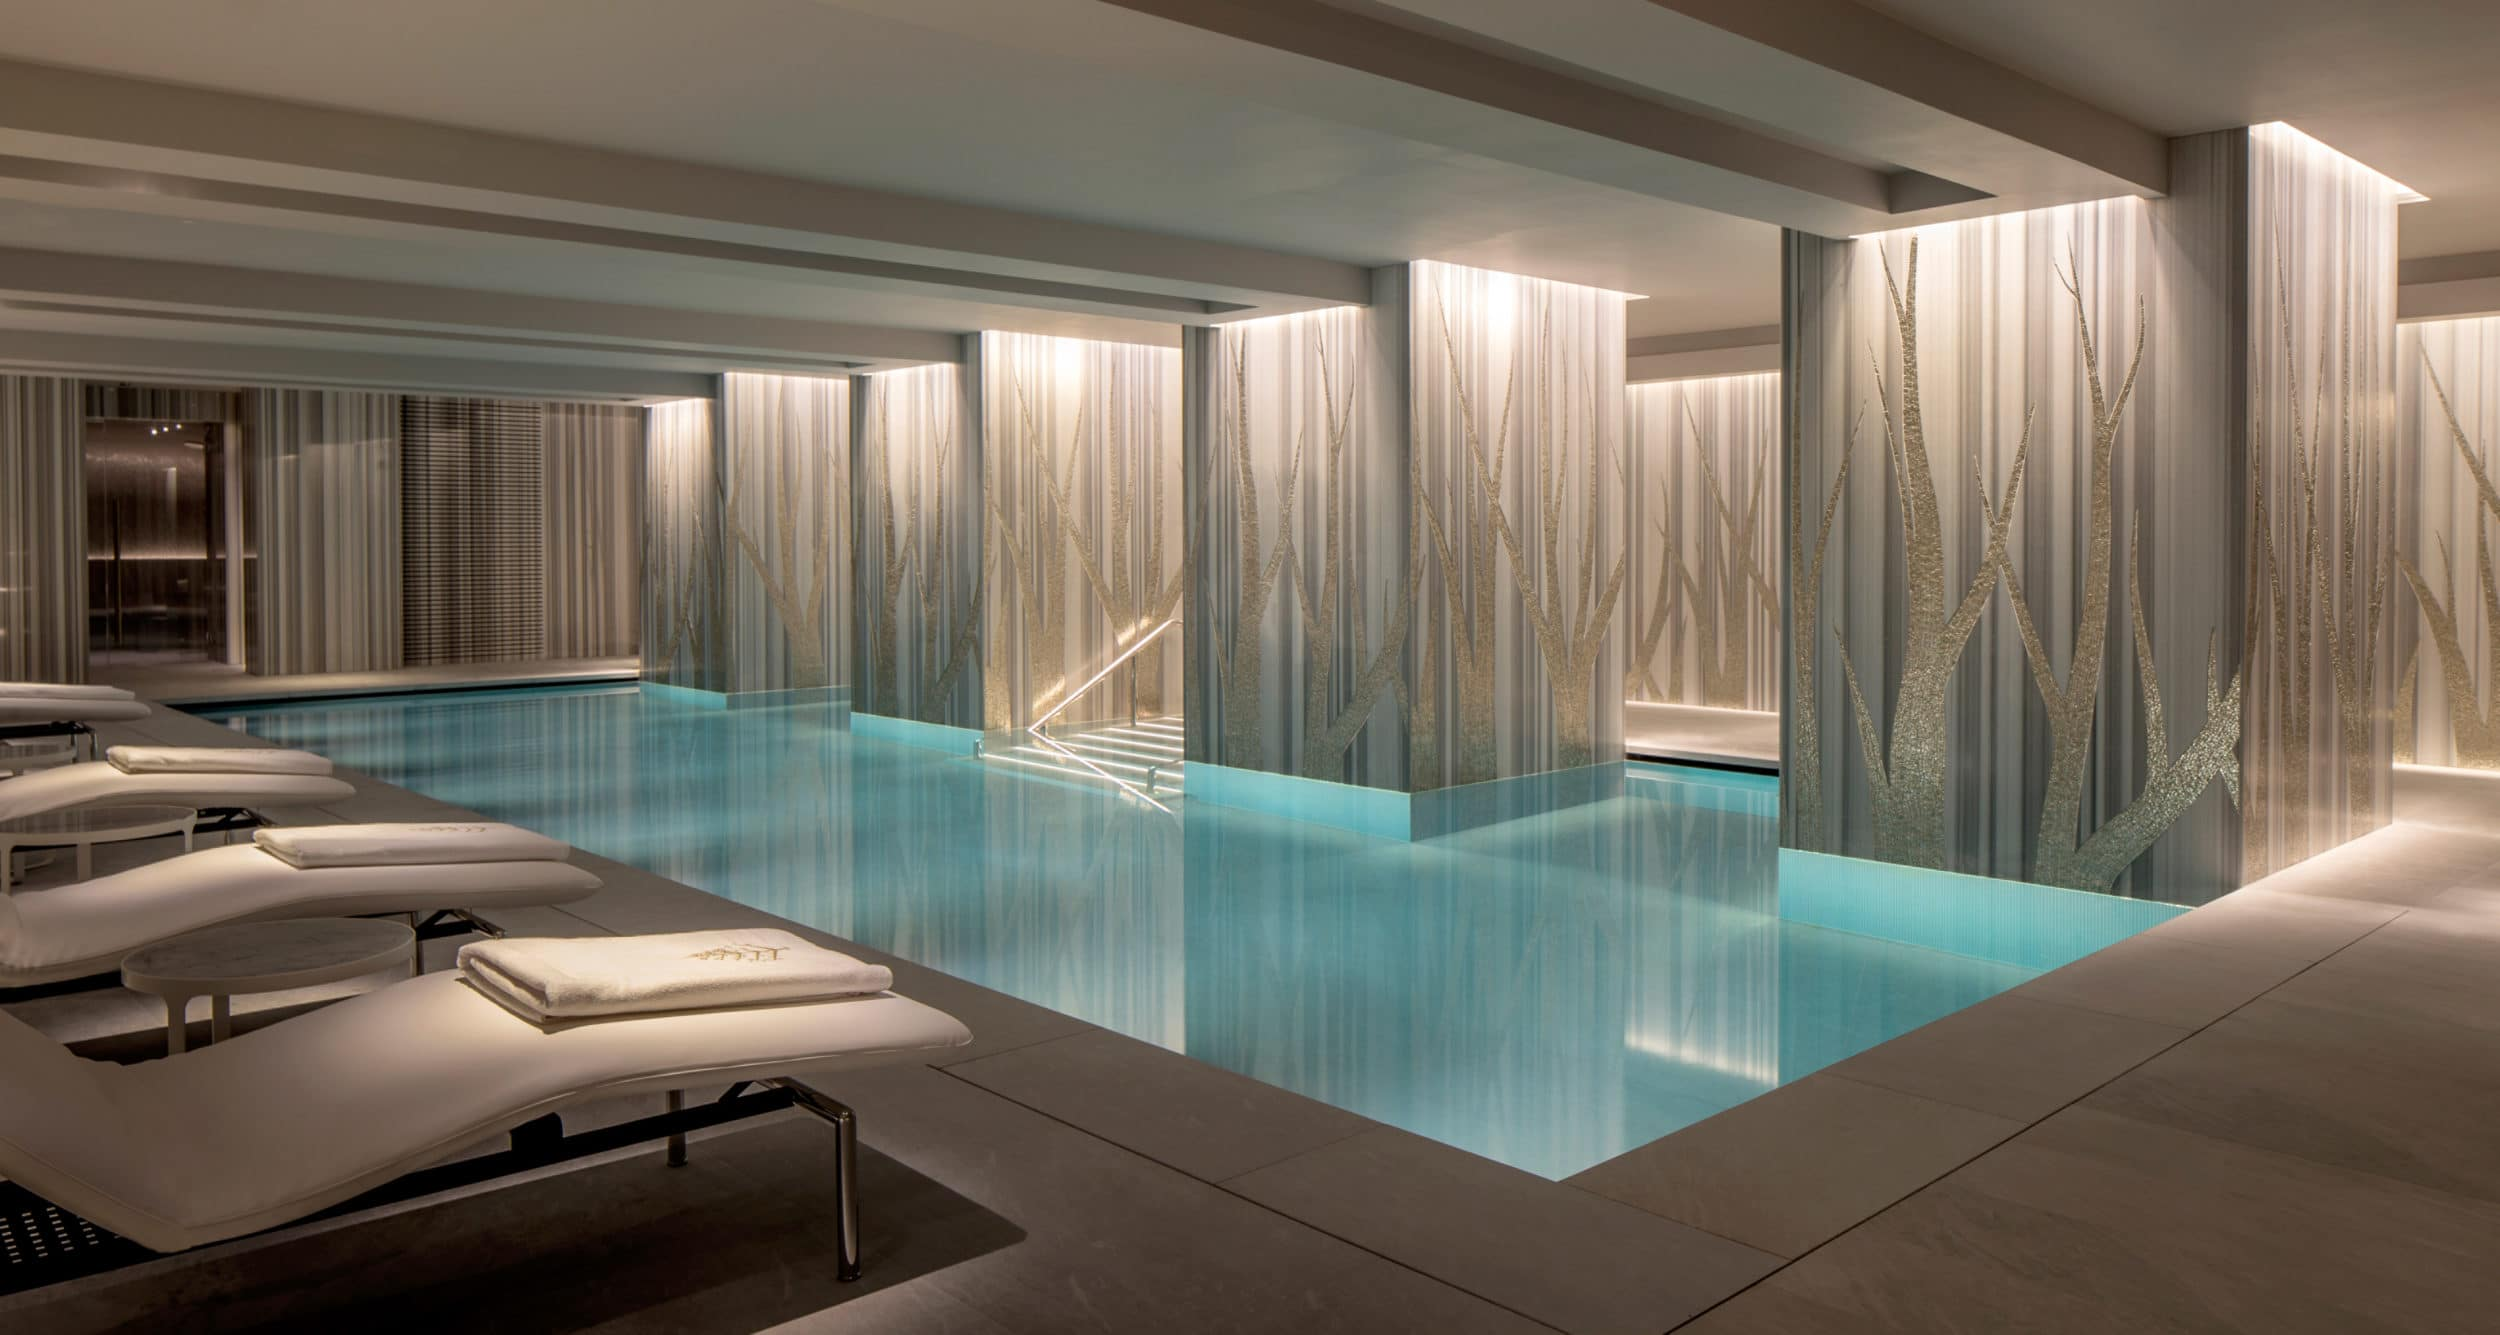 The pool at Four Seasons London at Ten Trinity Square